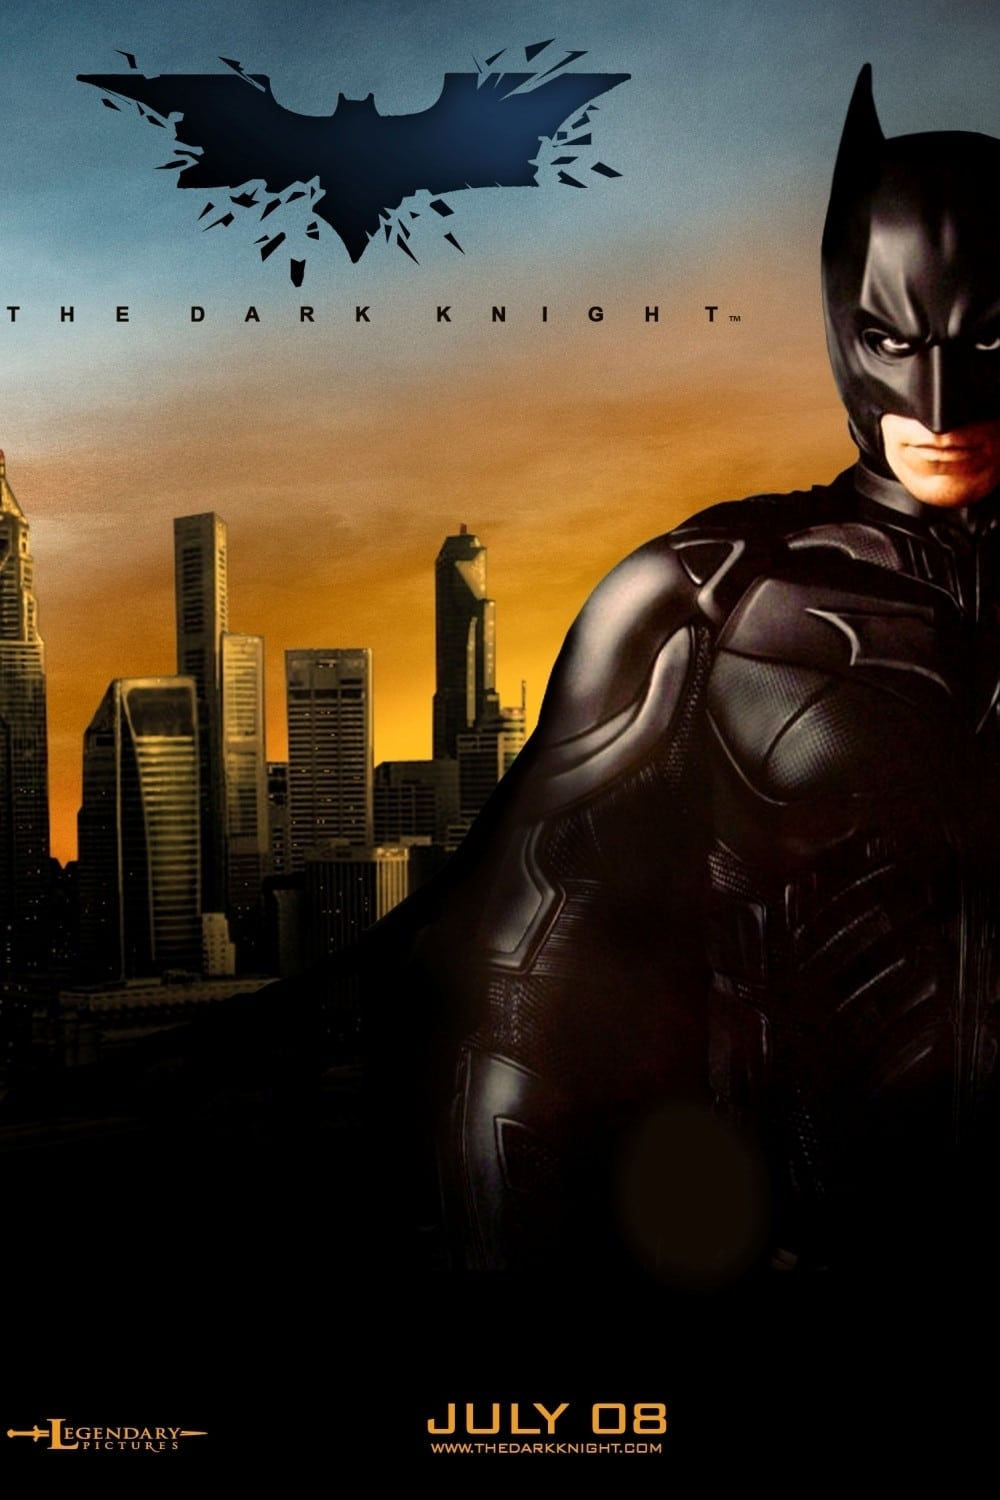 the dark knight poster high quality HD printable wallpapers 2008 batman in gotham city at evening